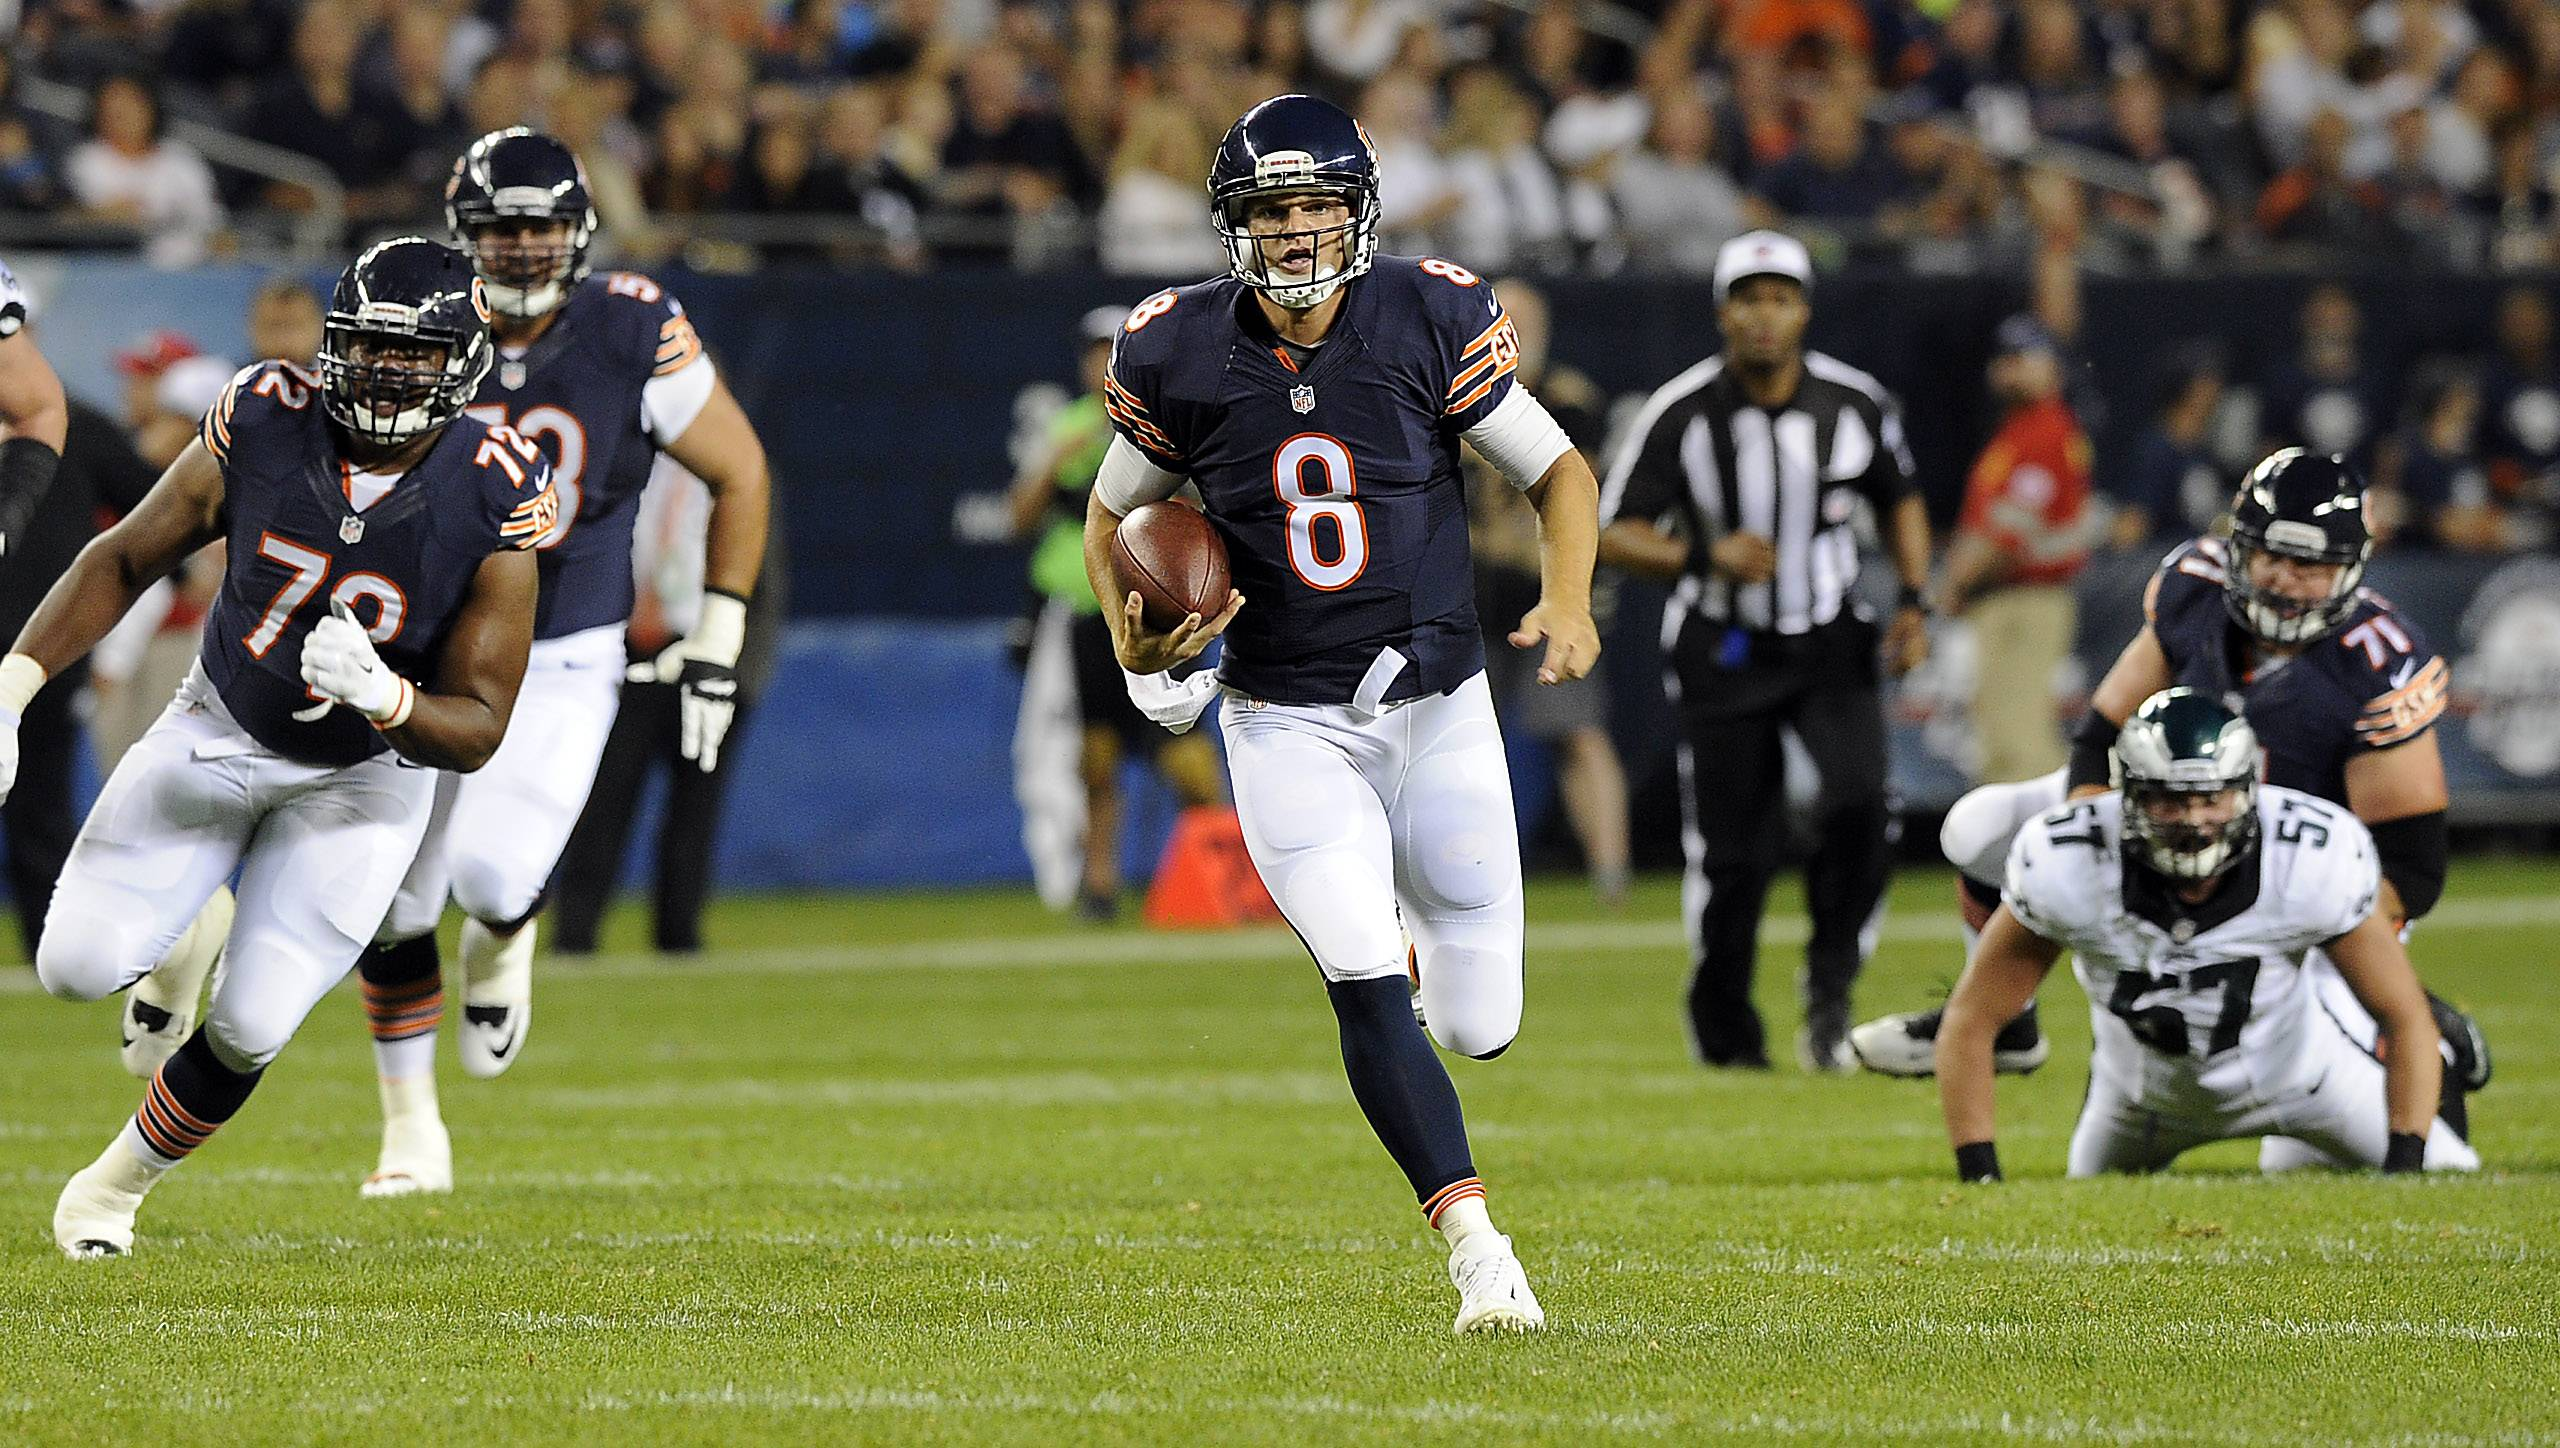 Chicago Bears quarterback Jimmy Clausen scrambles for yardage in the third quarter. This set up a pass play for a touchdown.